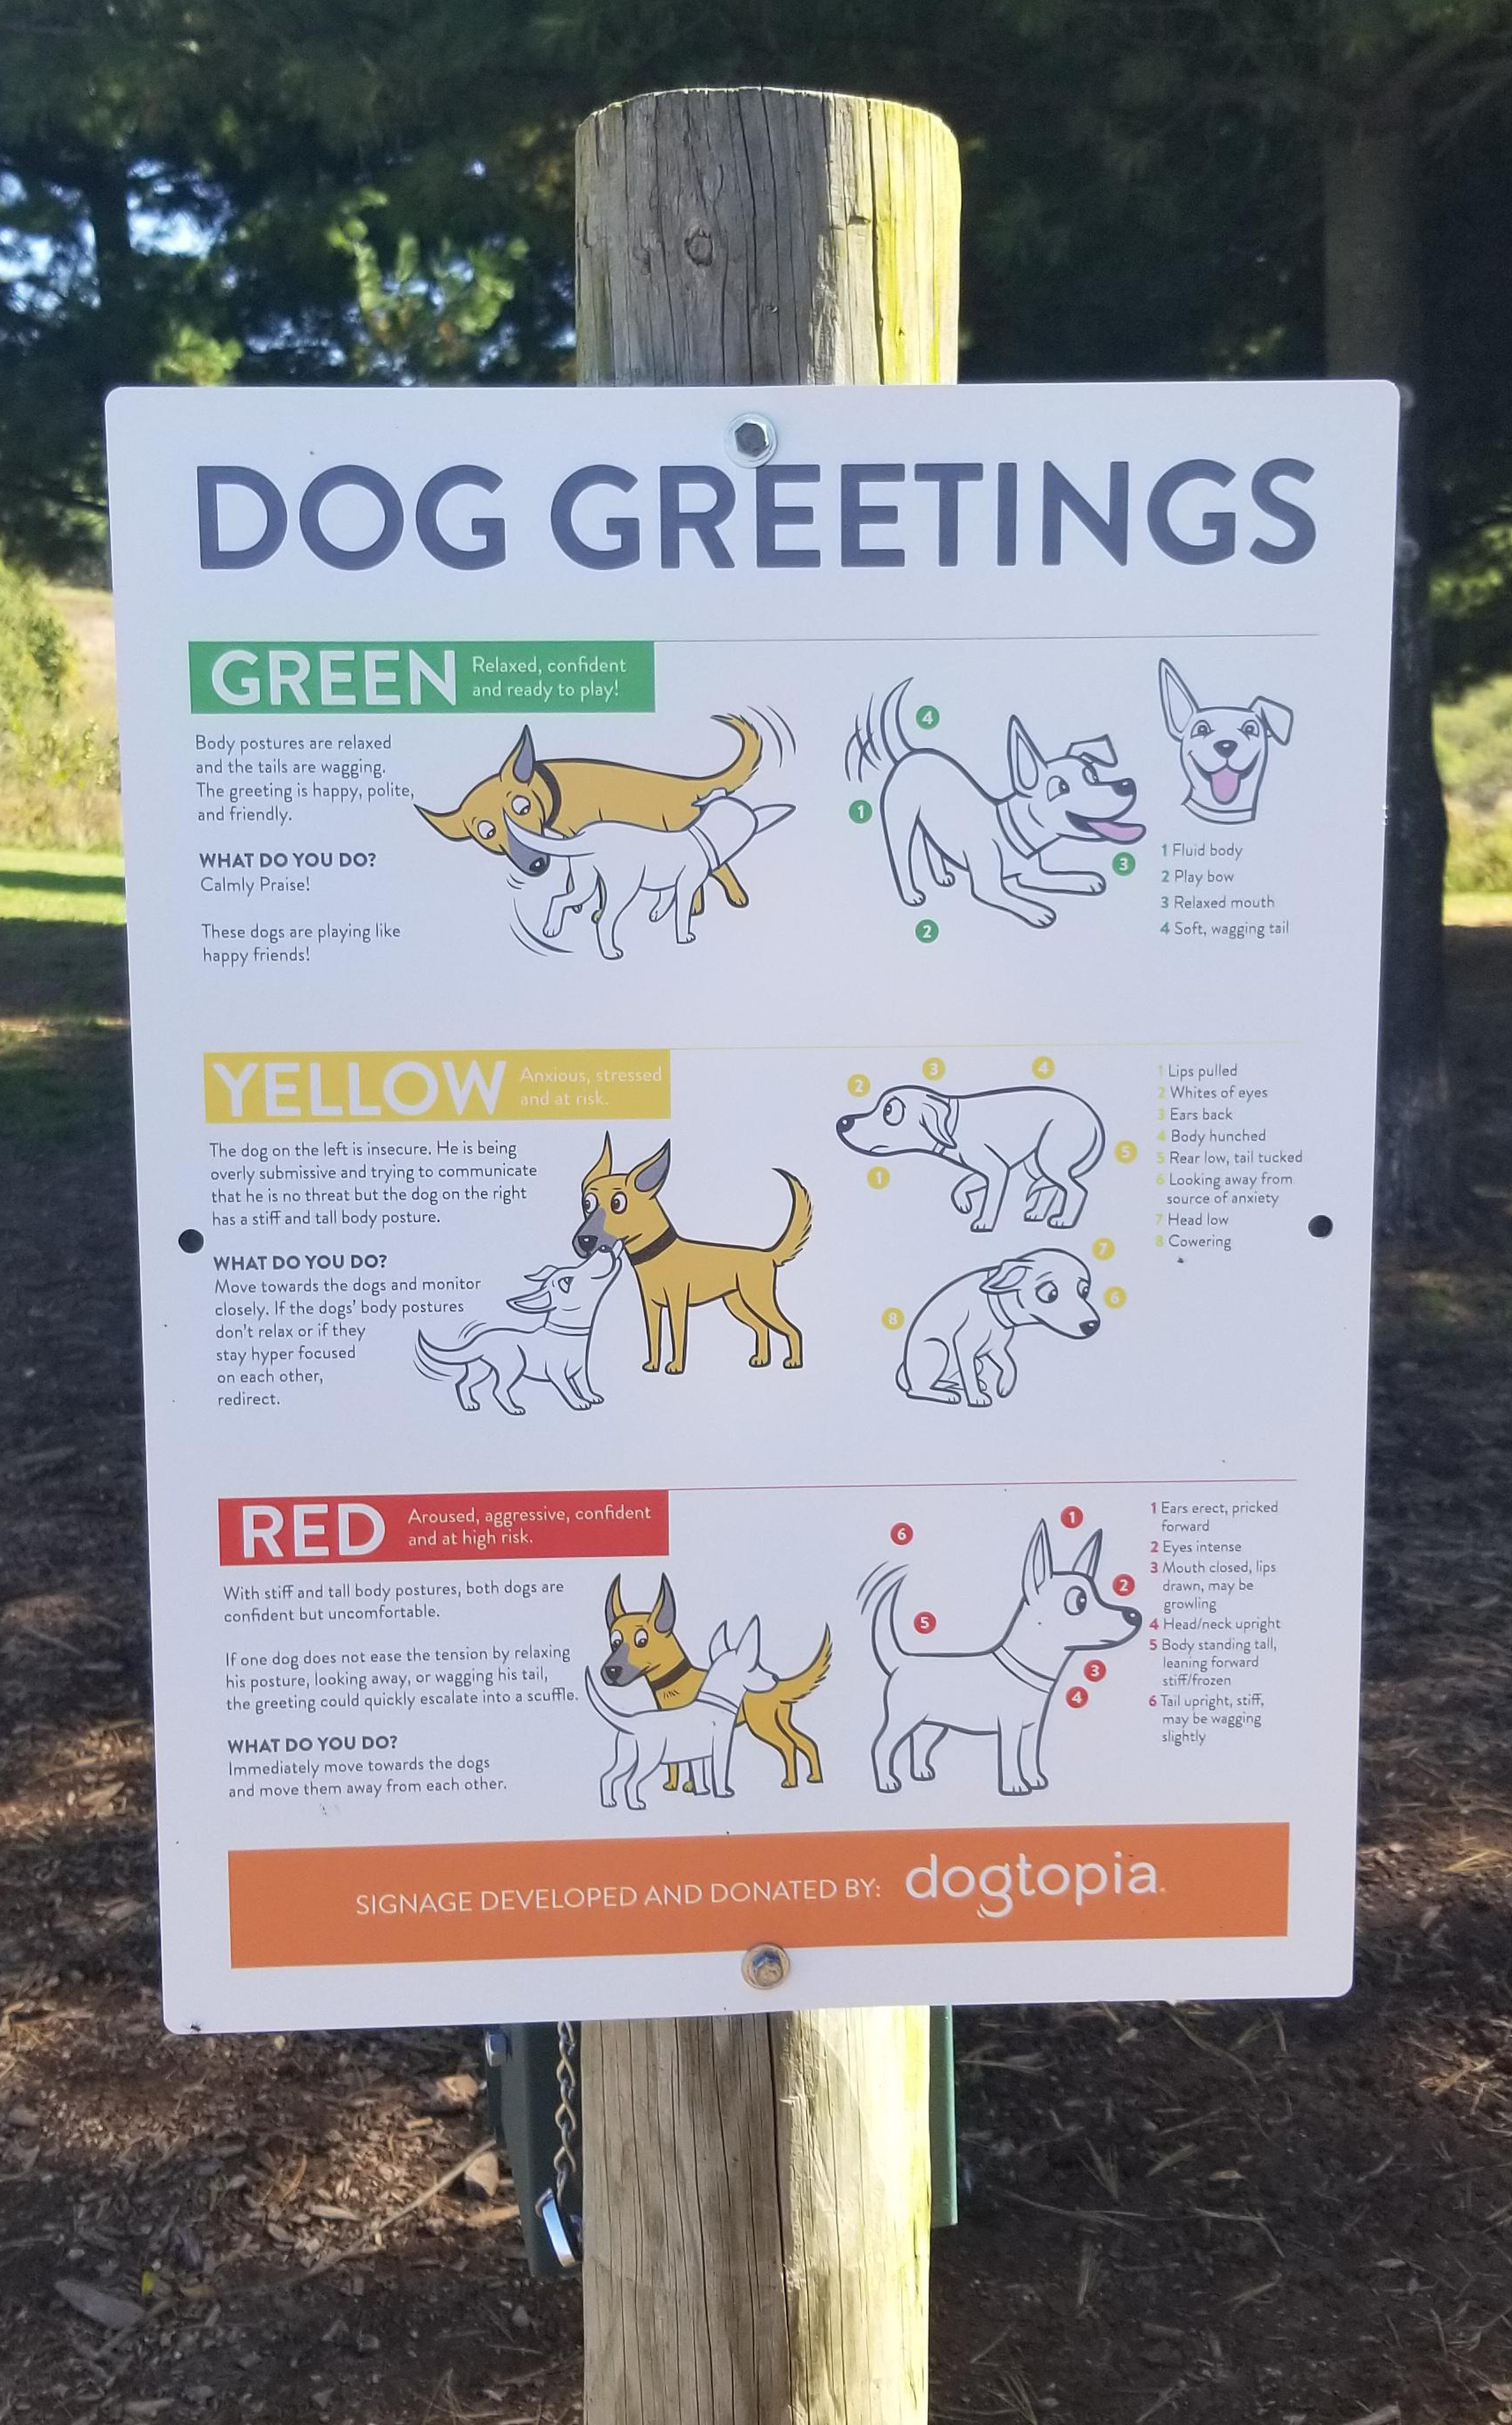 Guide To Dog-To-Dog Greetings